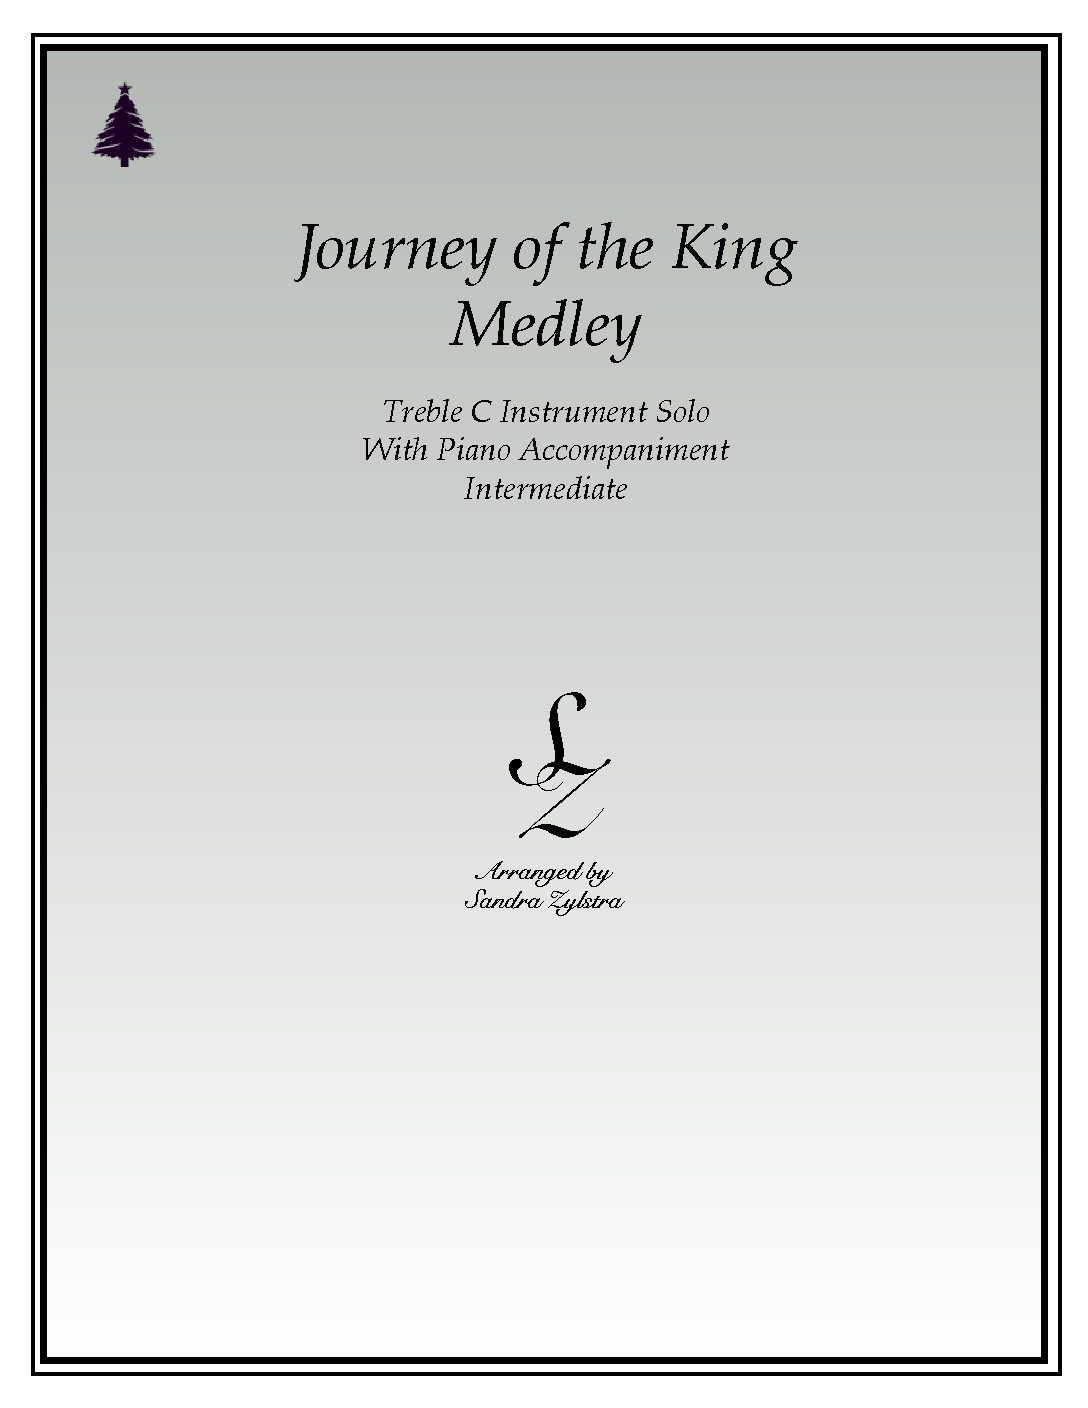 IS 40 Journey of the King Medley 04 Treble C pdf